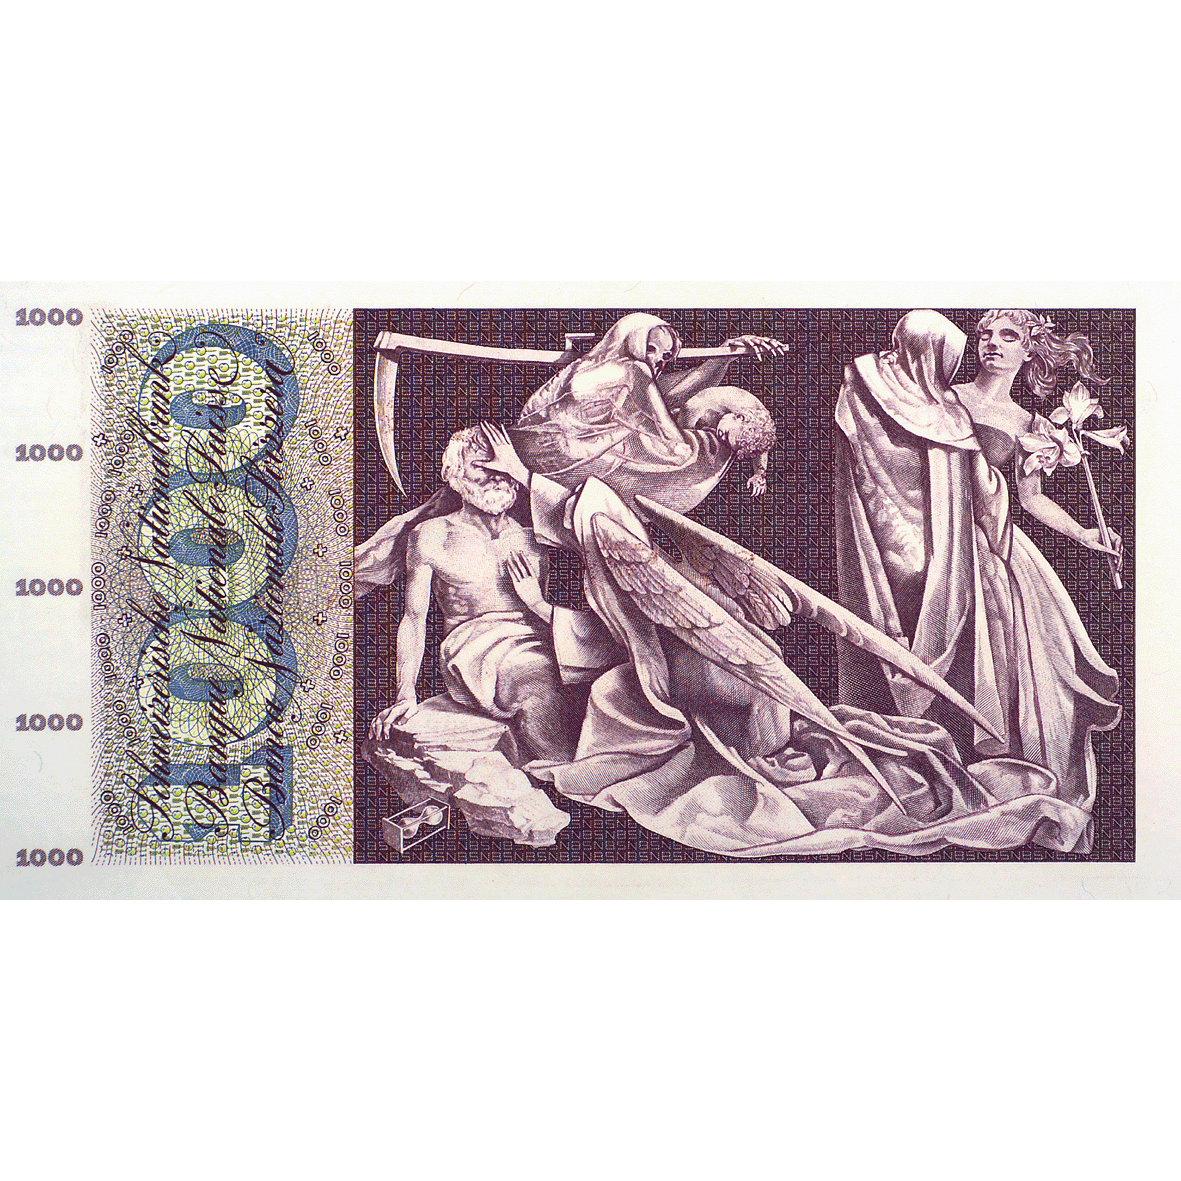 Swiss Confederation, 1,000 Francs (5th Banknote Series, in Circulation 1956-1980) (reverse)